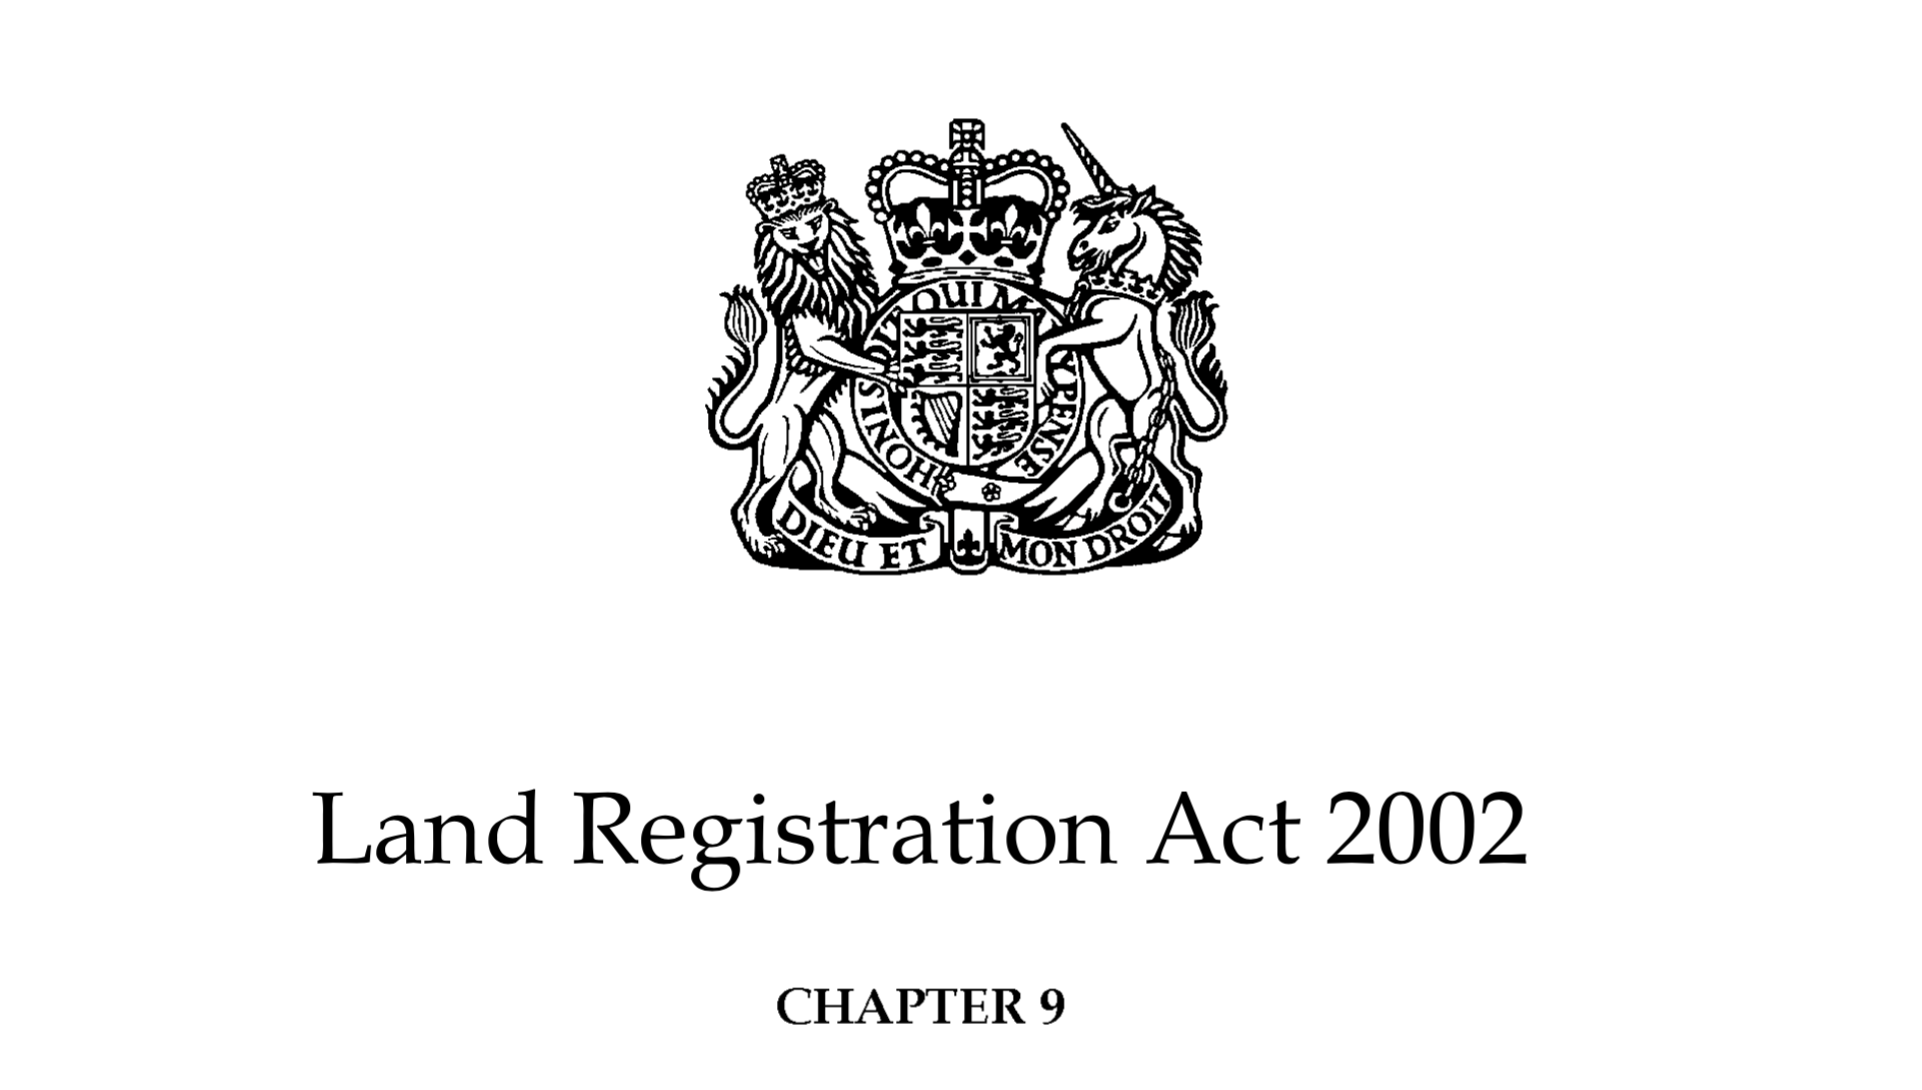 Image of the Land Registration Act 2002 with the Royal Coat of Arms